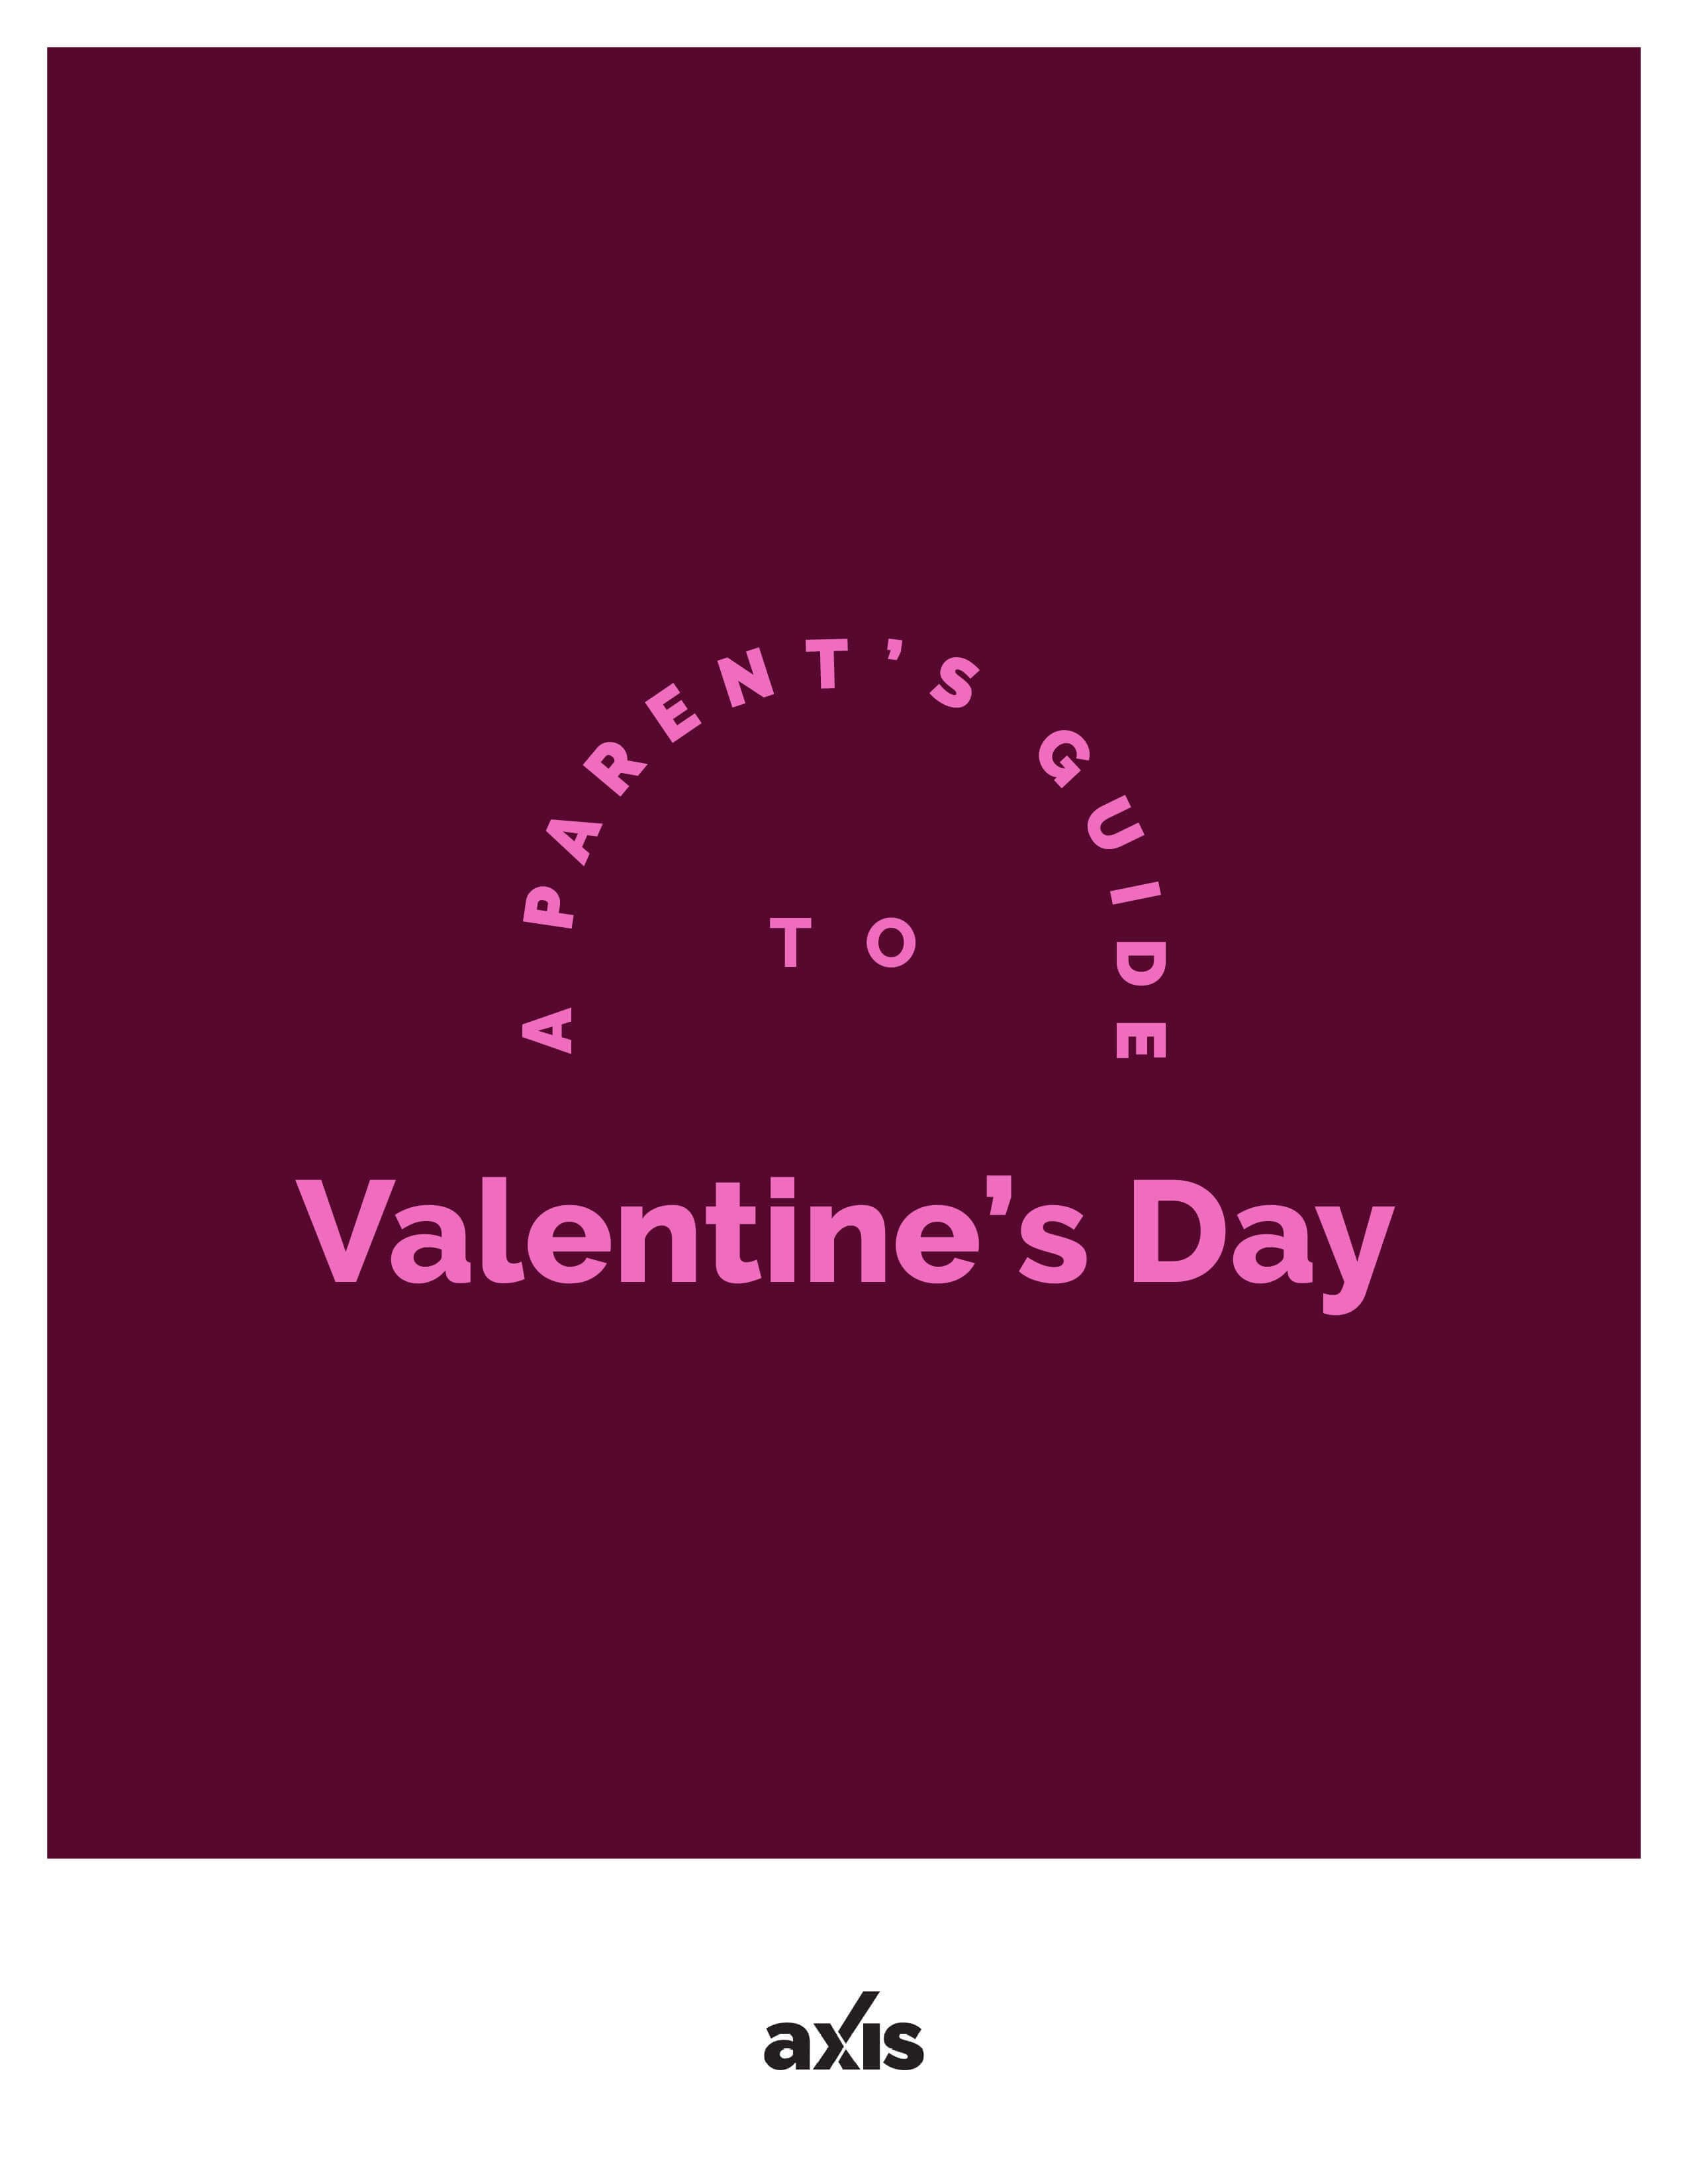 A Parent's Guide to Valentine's Day